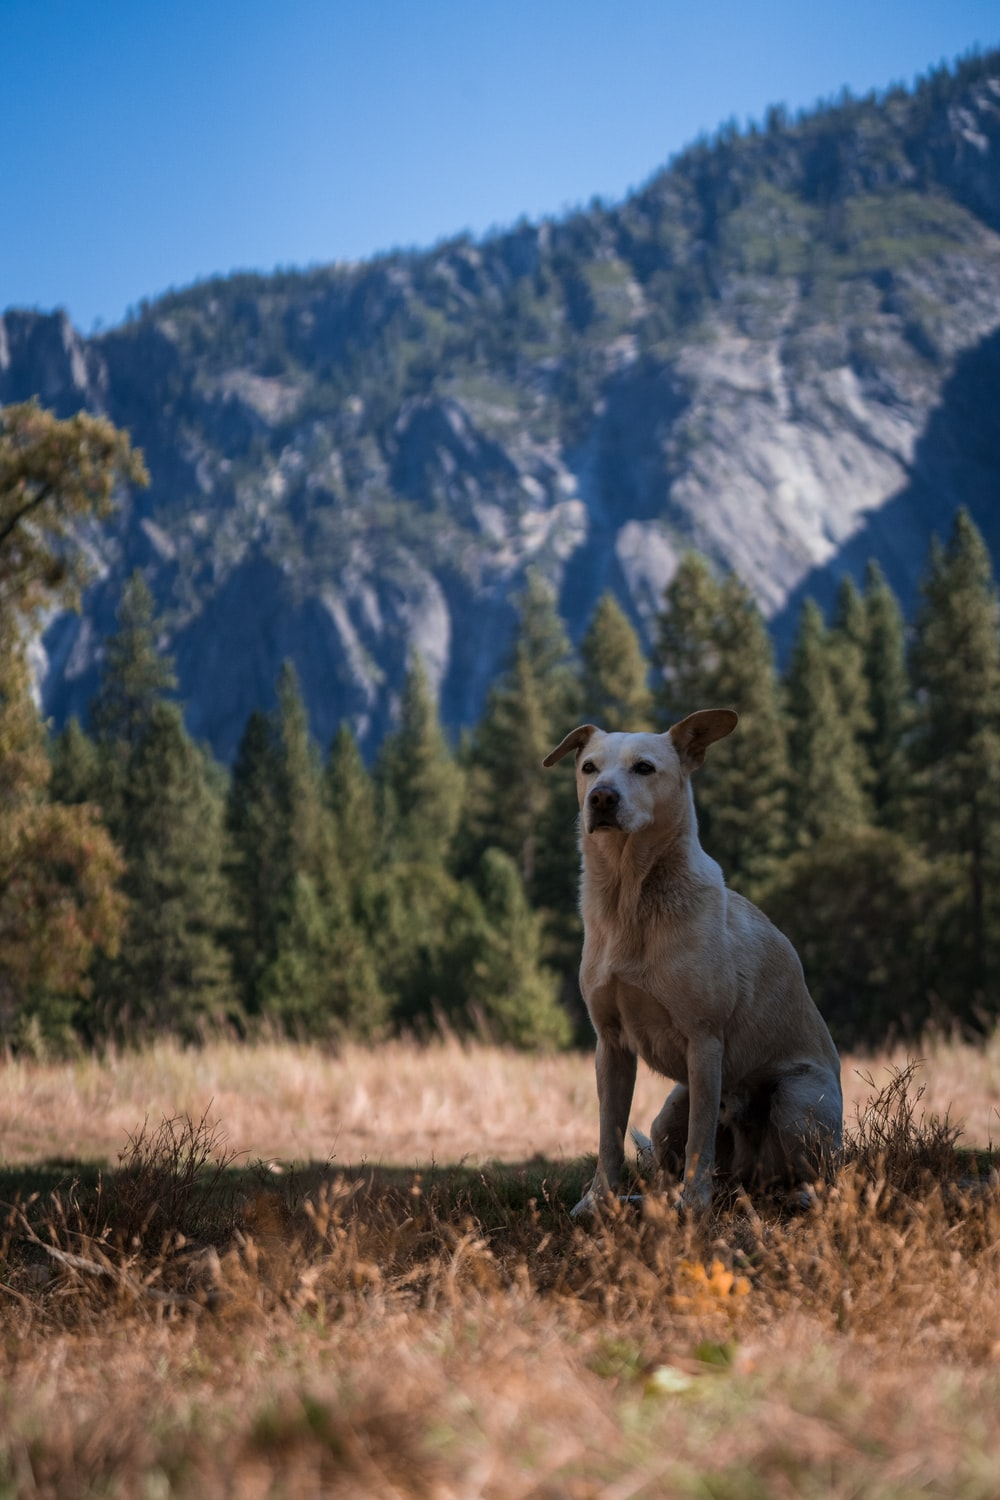 dog sitting on brown grass near trees and mountain